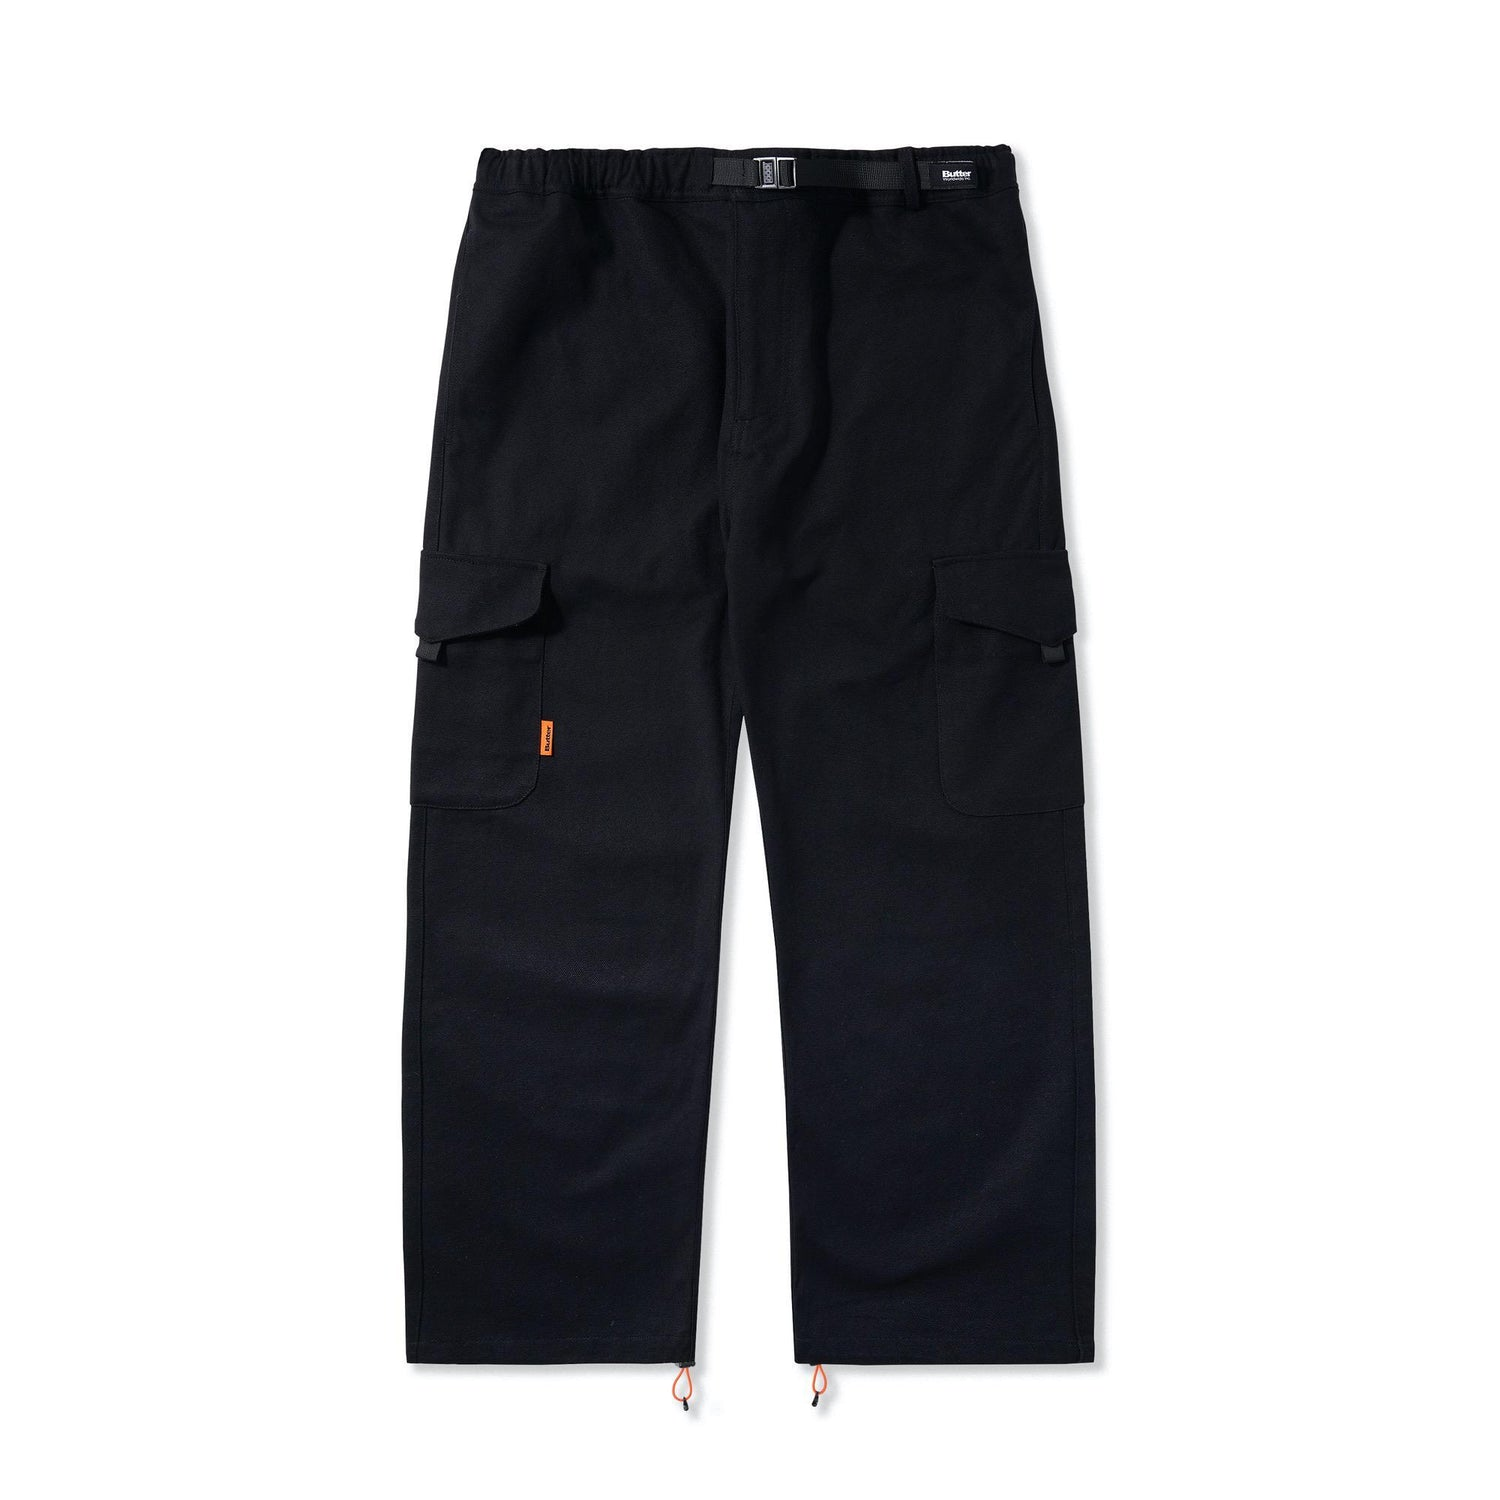 Equipment Cargo Pants, Black